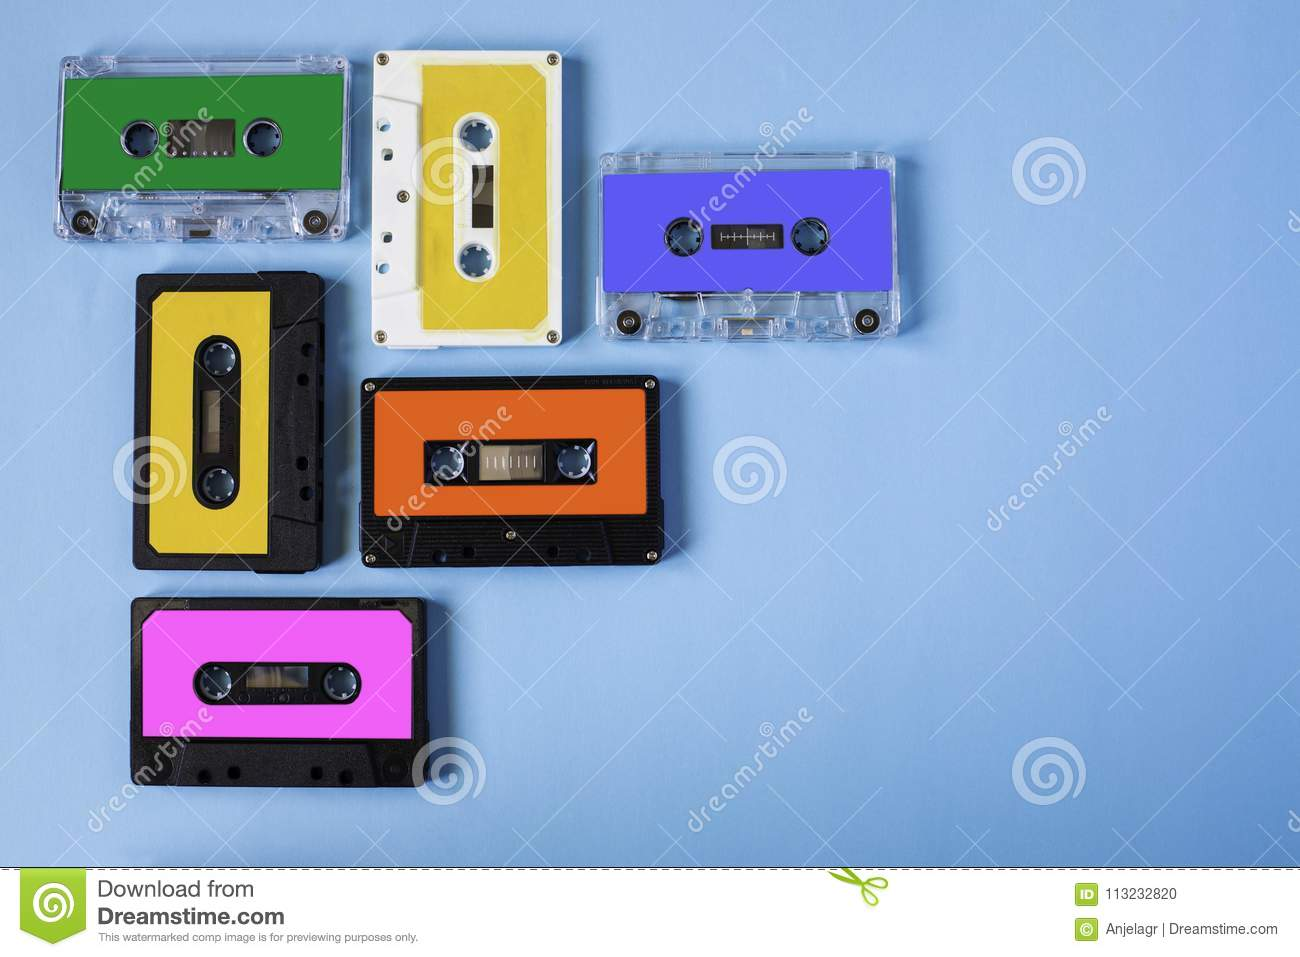 Retro cassette tape collection on blue background.